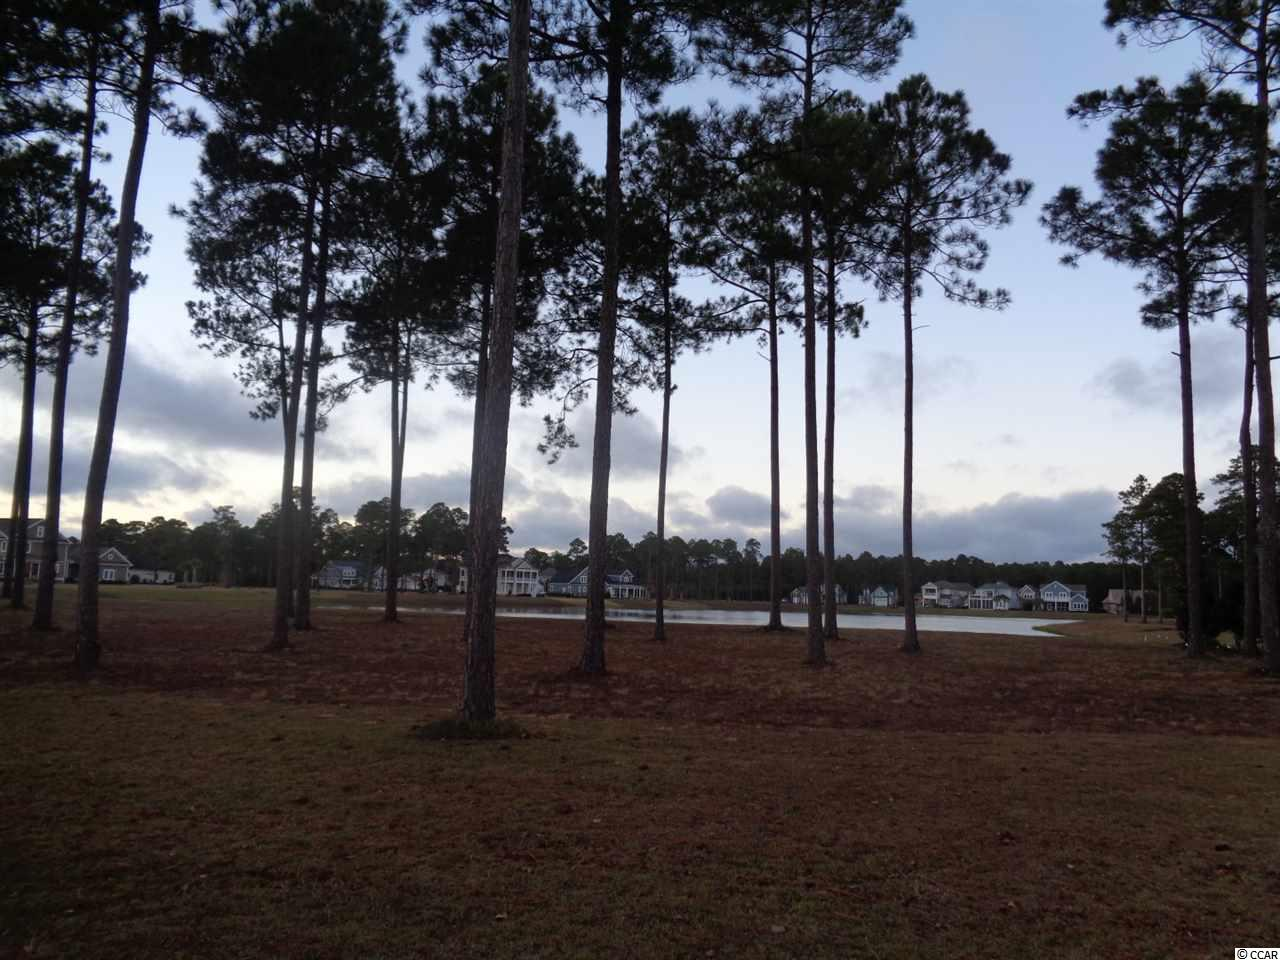 Location! Location! Location! Build your dream home on this waterfront lot in the beautiful gated community of Waterbridge. This lot is located near the amenities center, which offers a pool, fitness center, volleyball court, tennis courts and more! Located in the heart of Carolina Forest near all the great schools, restaurants, Tanger Outlets, Broadway at the Beach and many more attractions. Only a short distance to the beach!